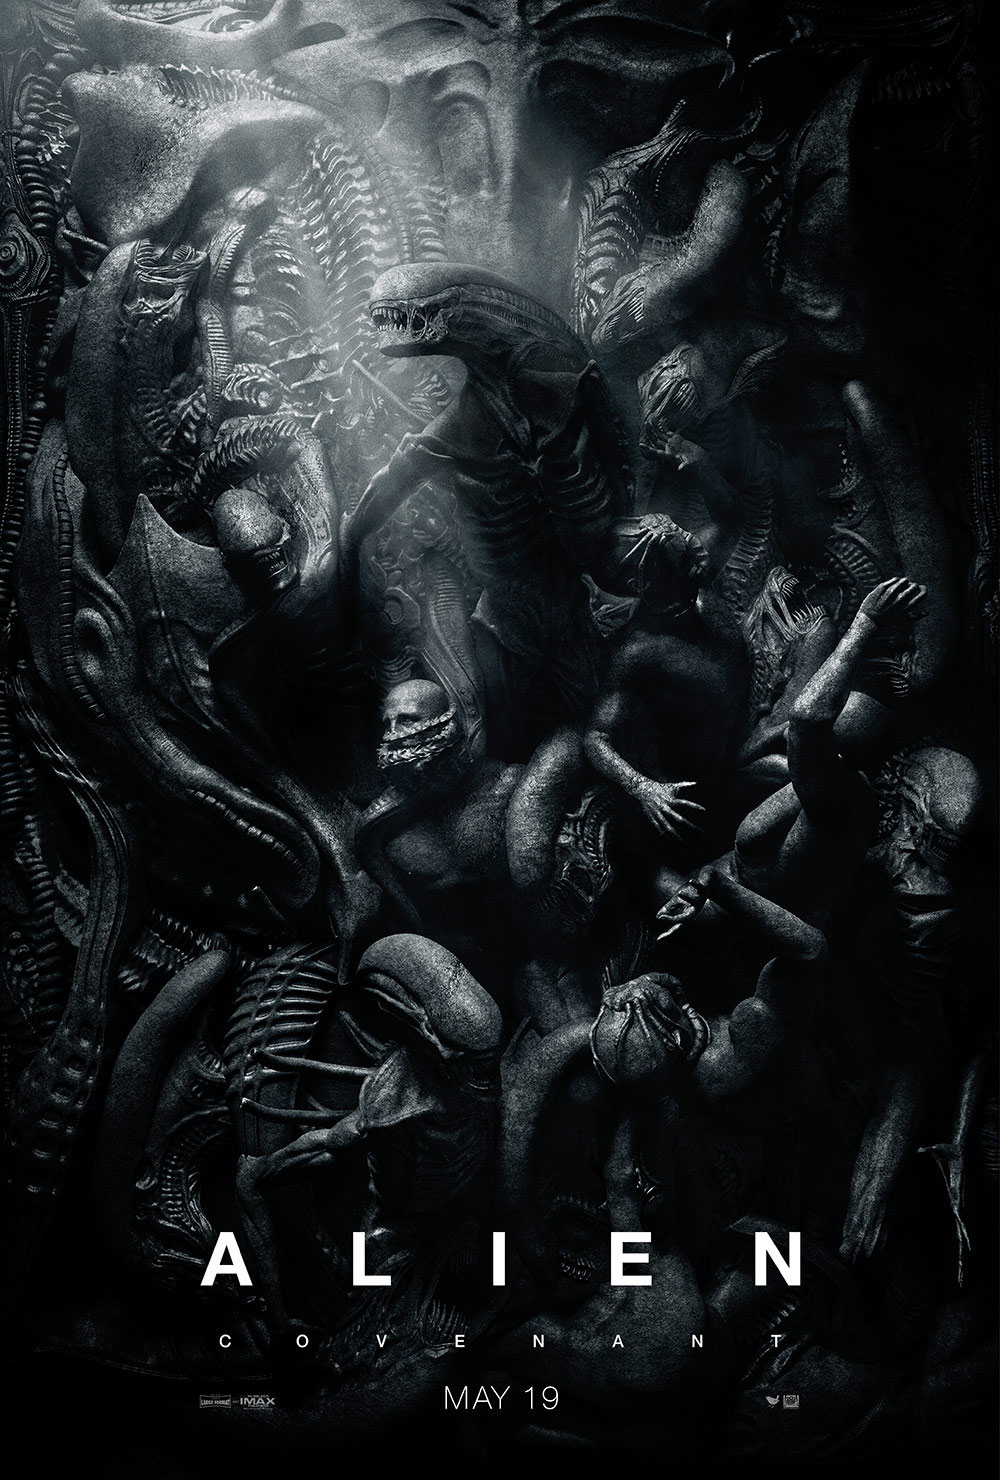 alien-covenant-official-movie-poster-2.jpg